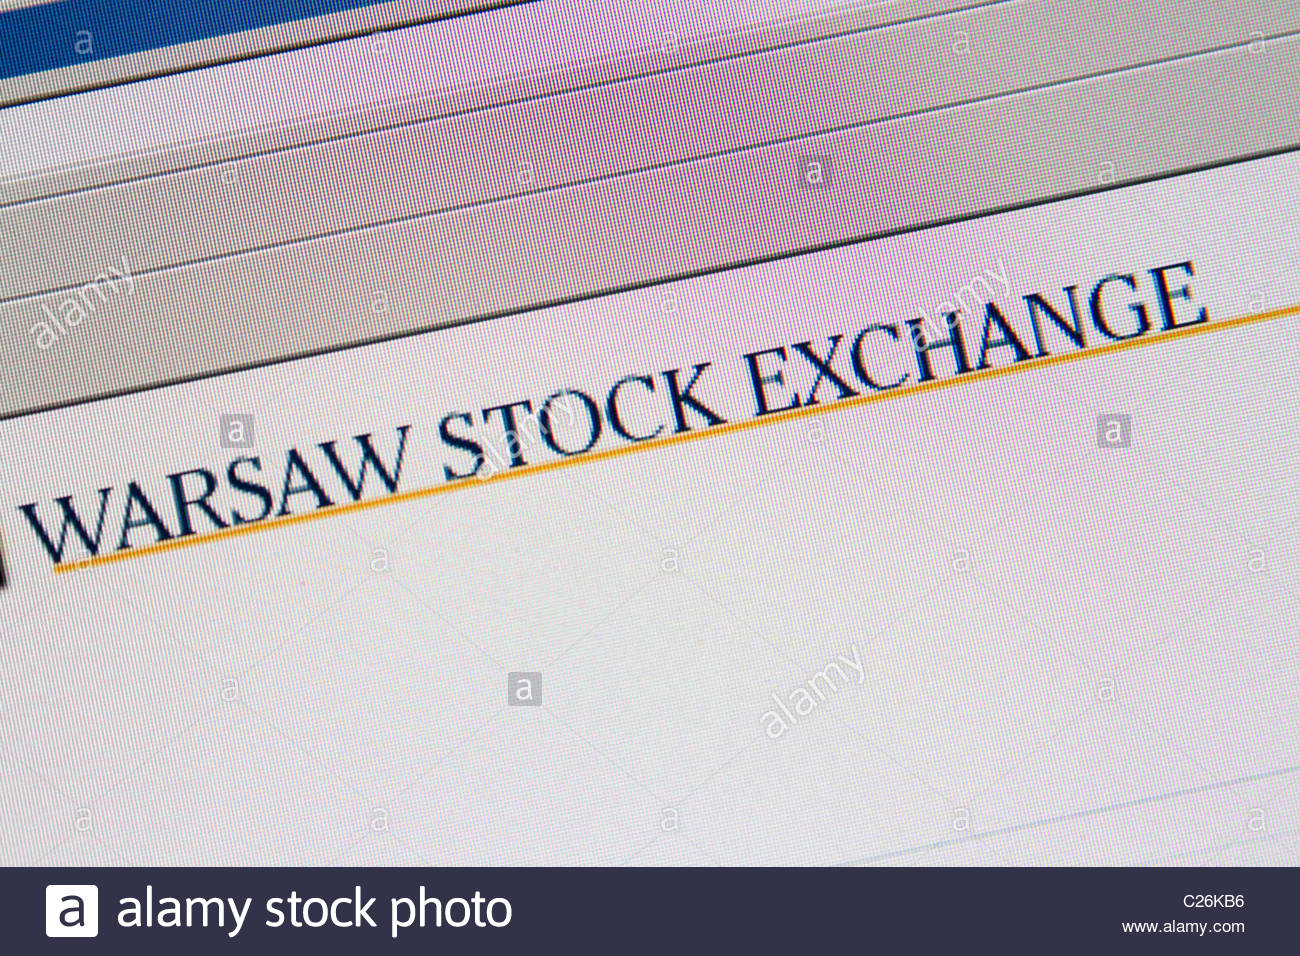 warsaw stock exchange online - Stock Image